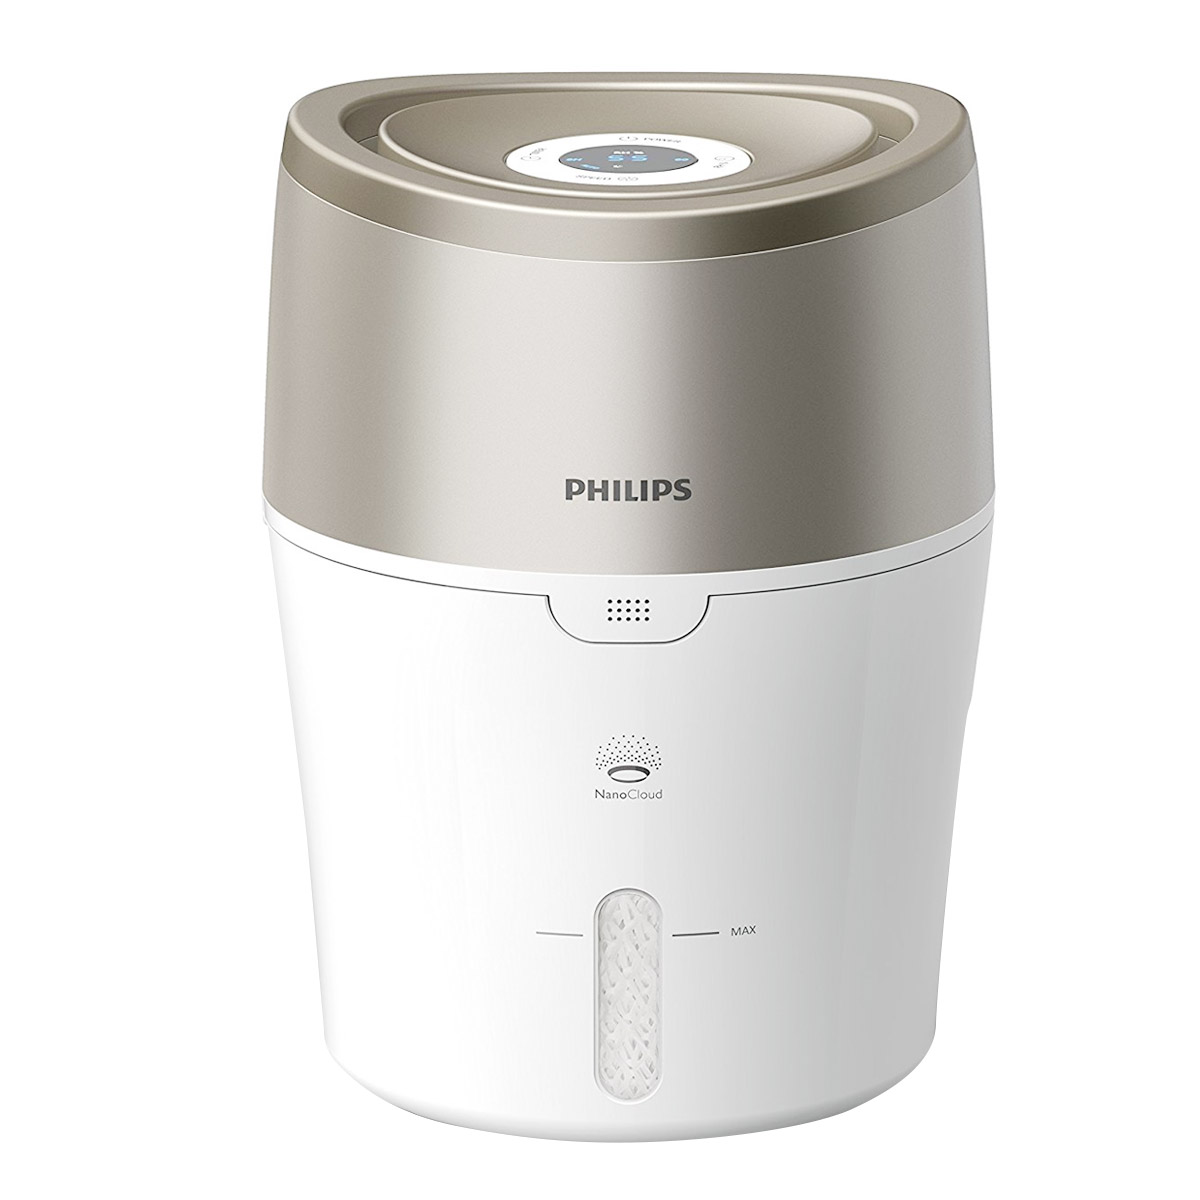 Philips NanoCloud Air Humidifier